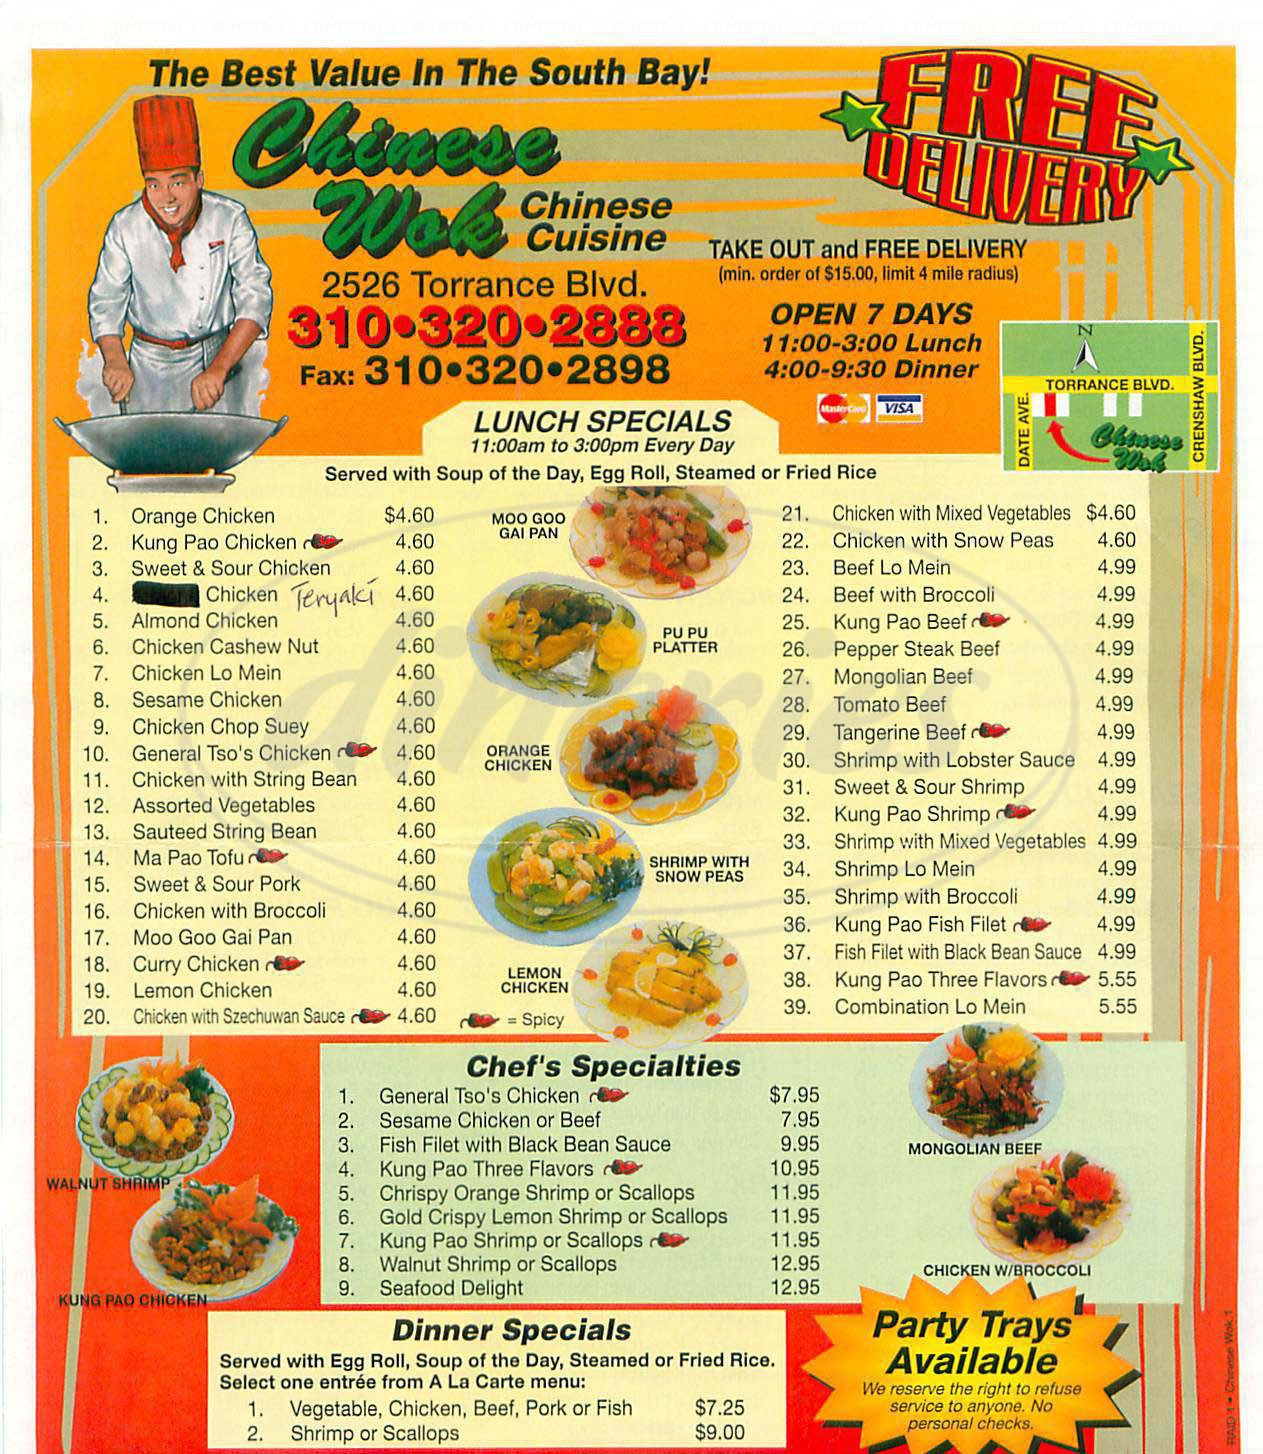 menu for The Chinese Wok